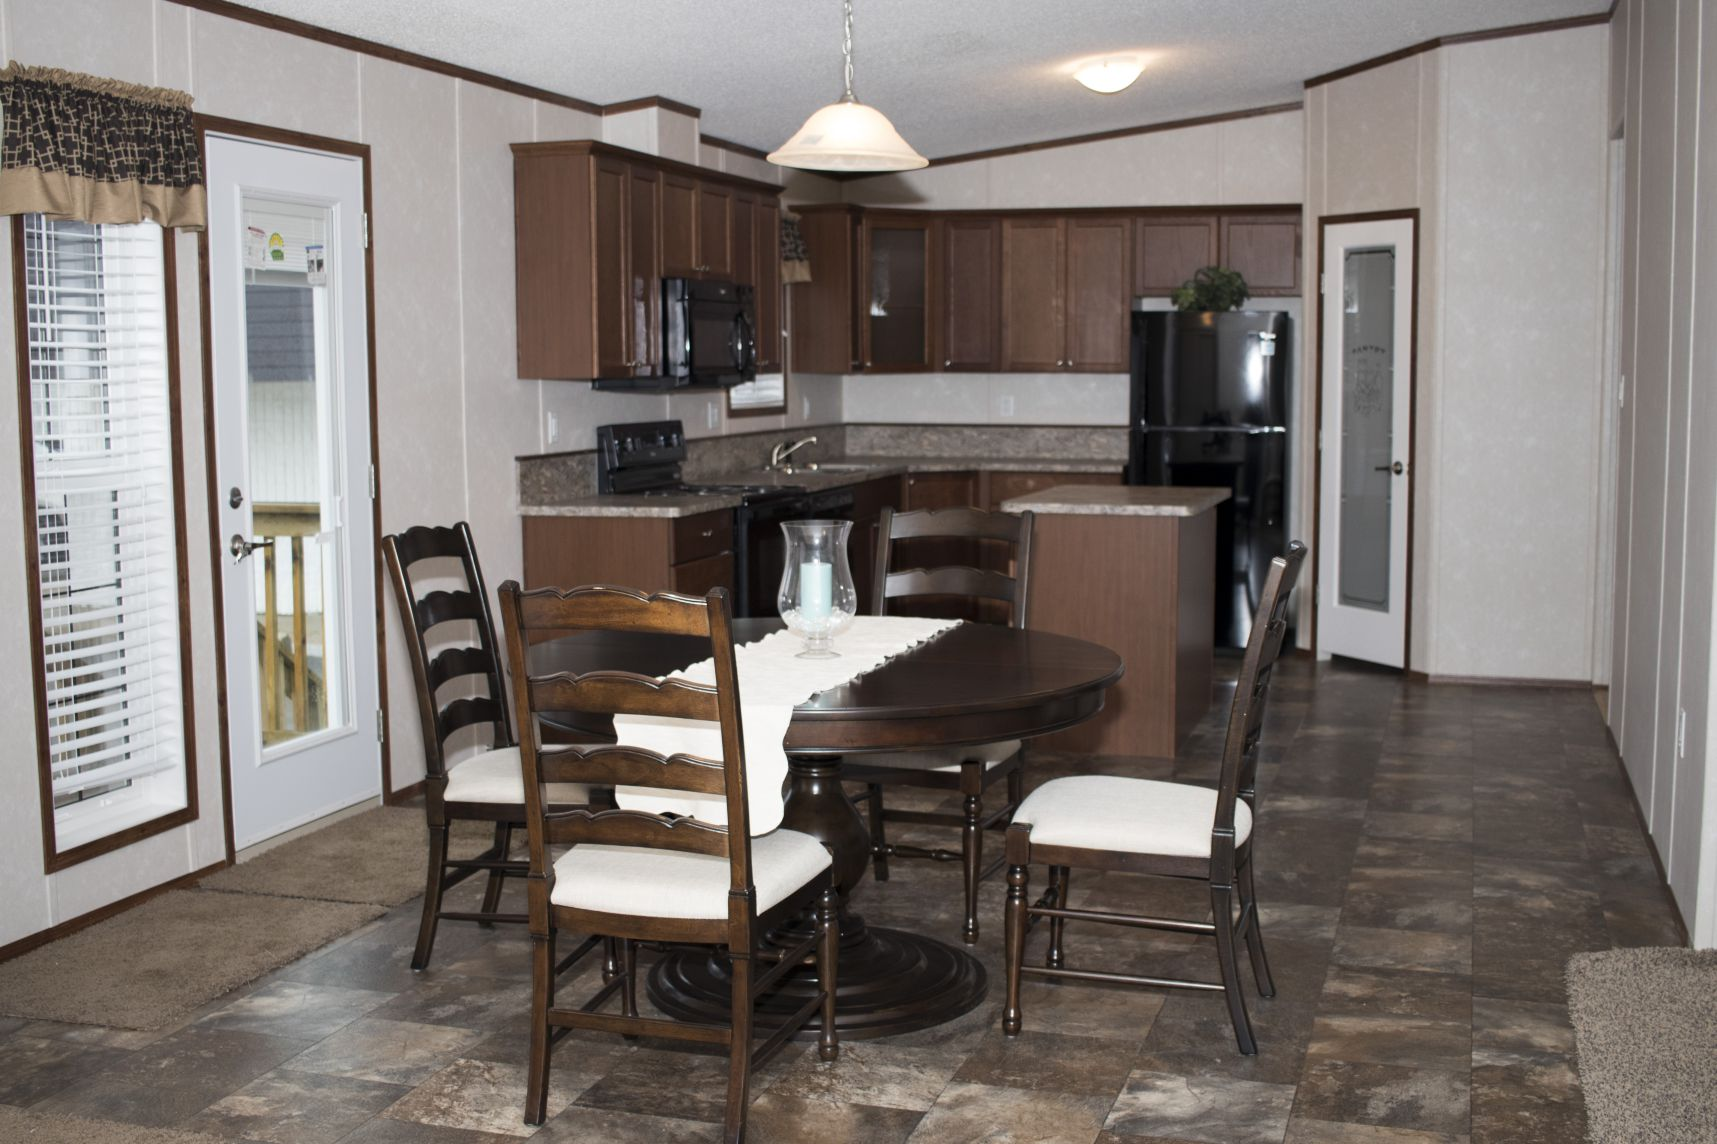 Northland Galaxy Mobile Home Dining Room Kitchen